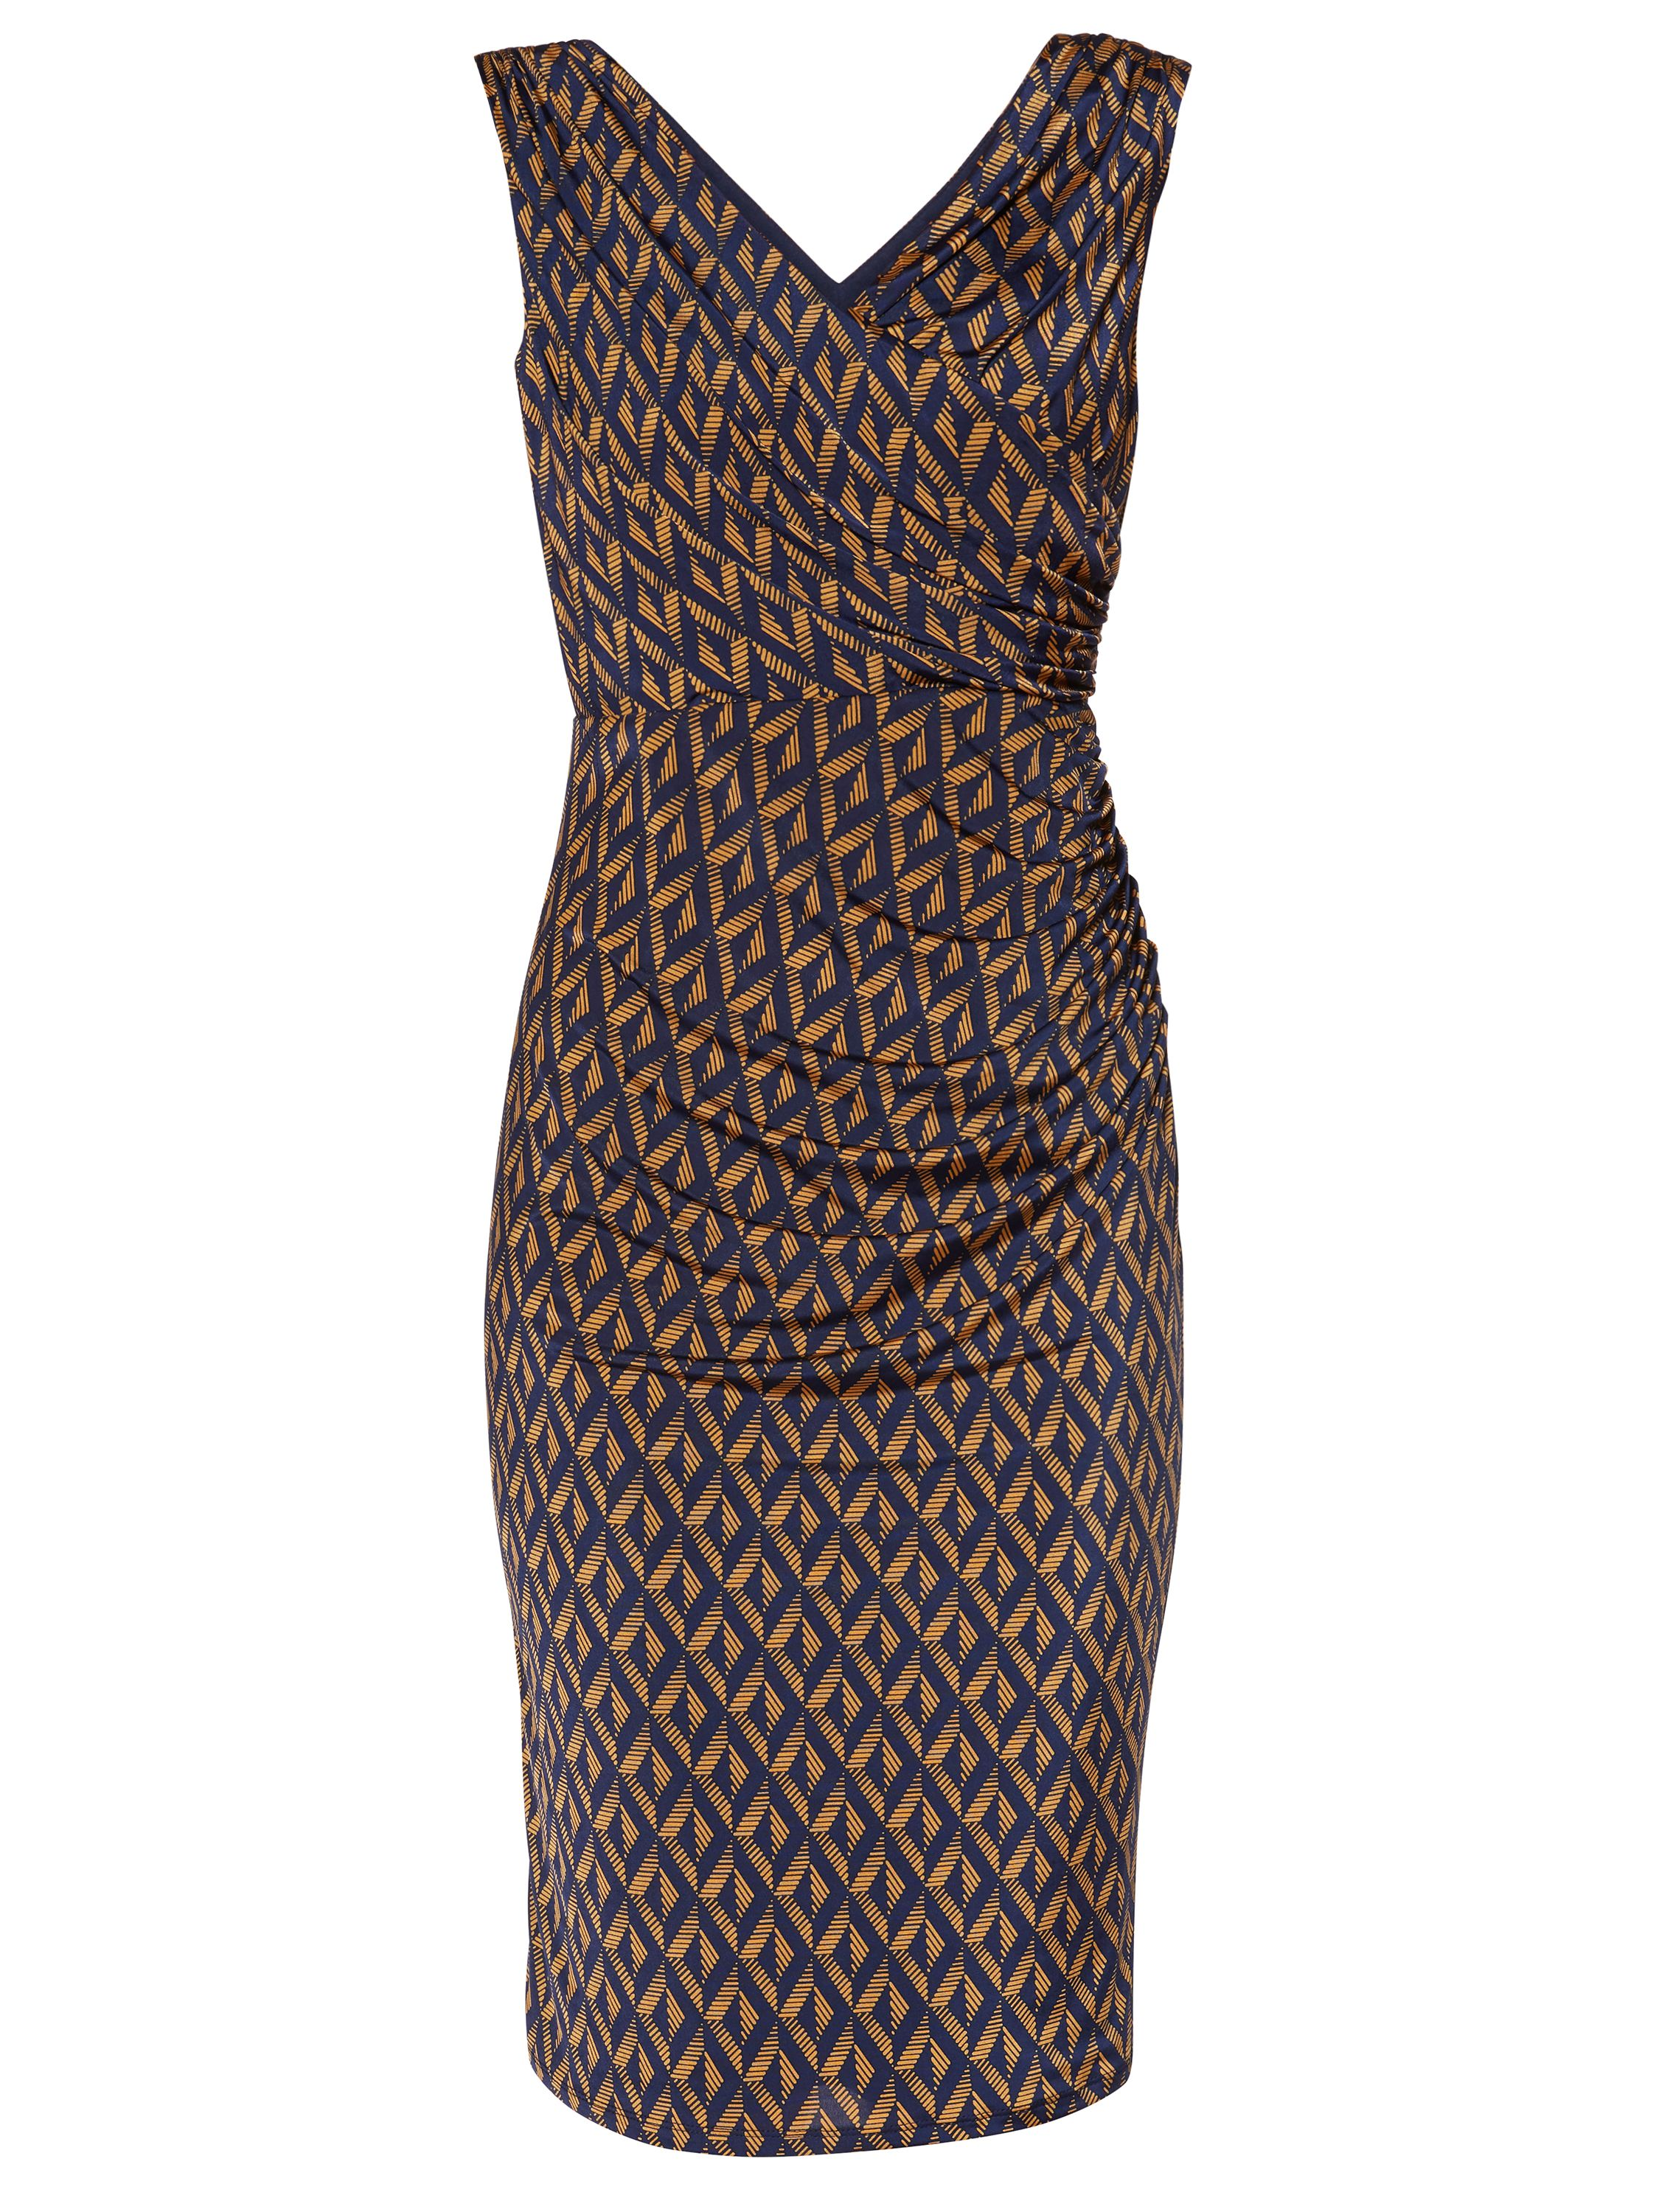 Gina Bacconi Navy Gold Print Jersey Sleeveless Dress, Multi-Coloured